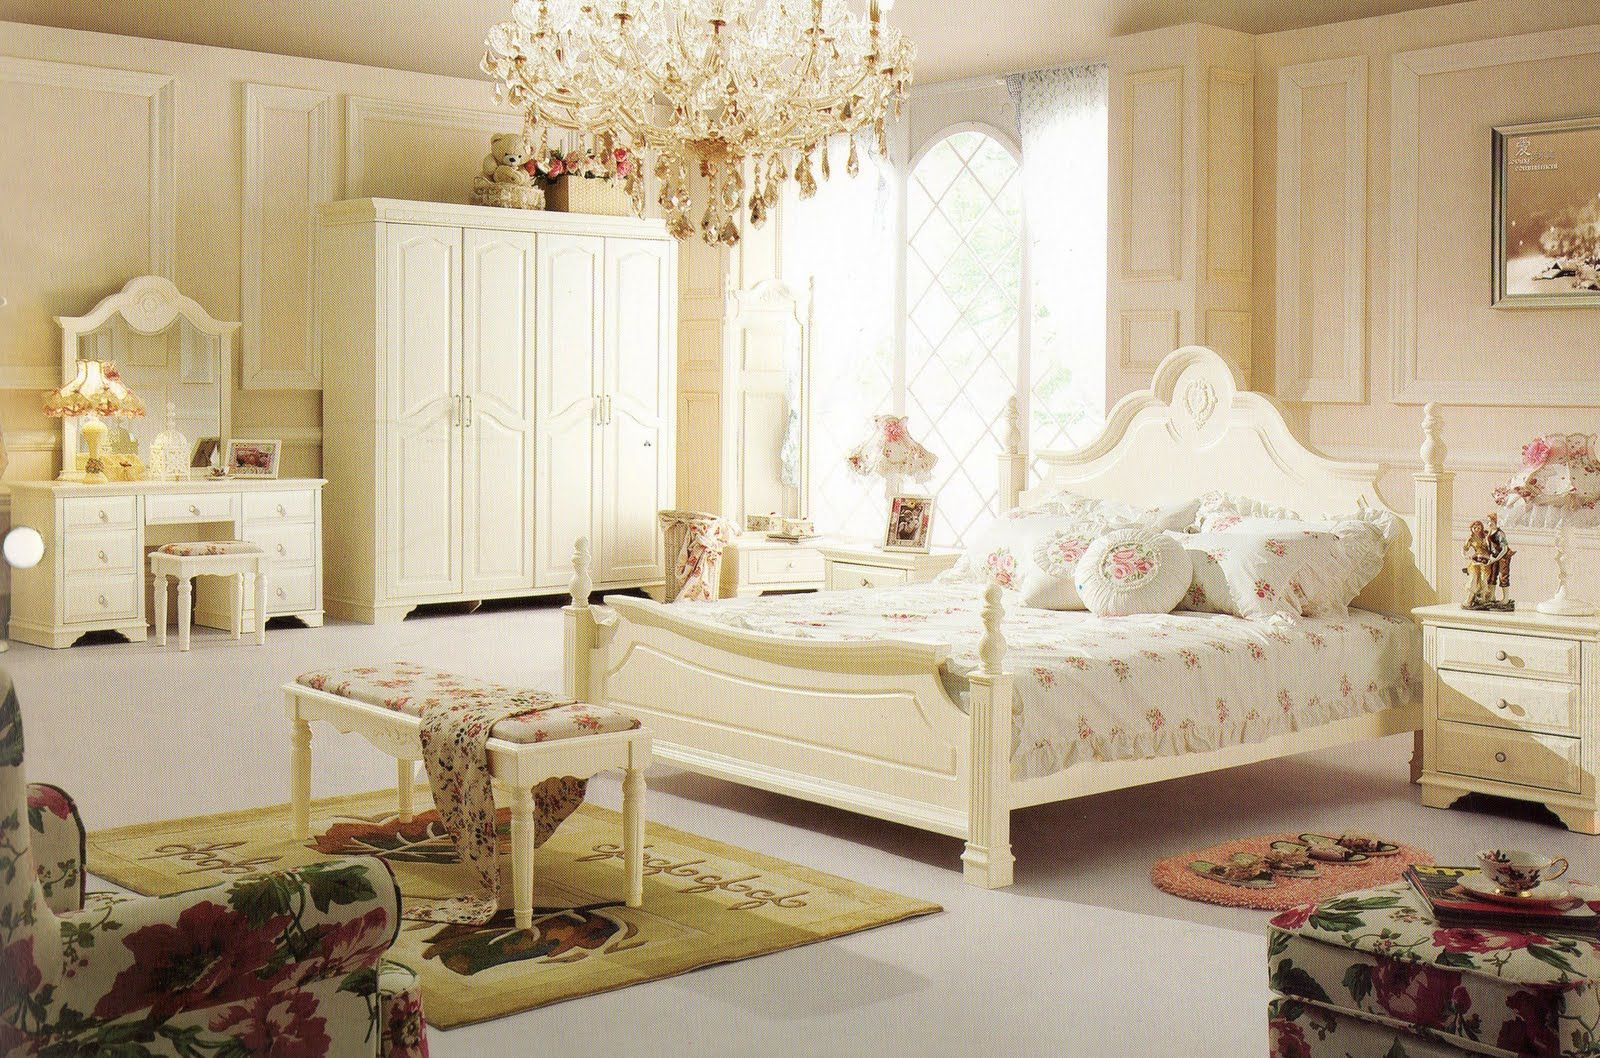 Old Style Bedroom Designs Interesting Luxury Beautiful Bedroom Design Ideas With Luxury Bedroom Looking Decorating Design